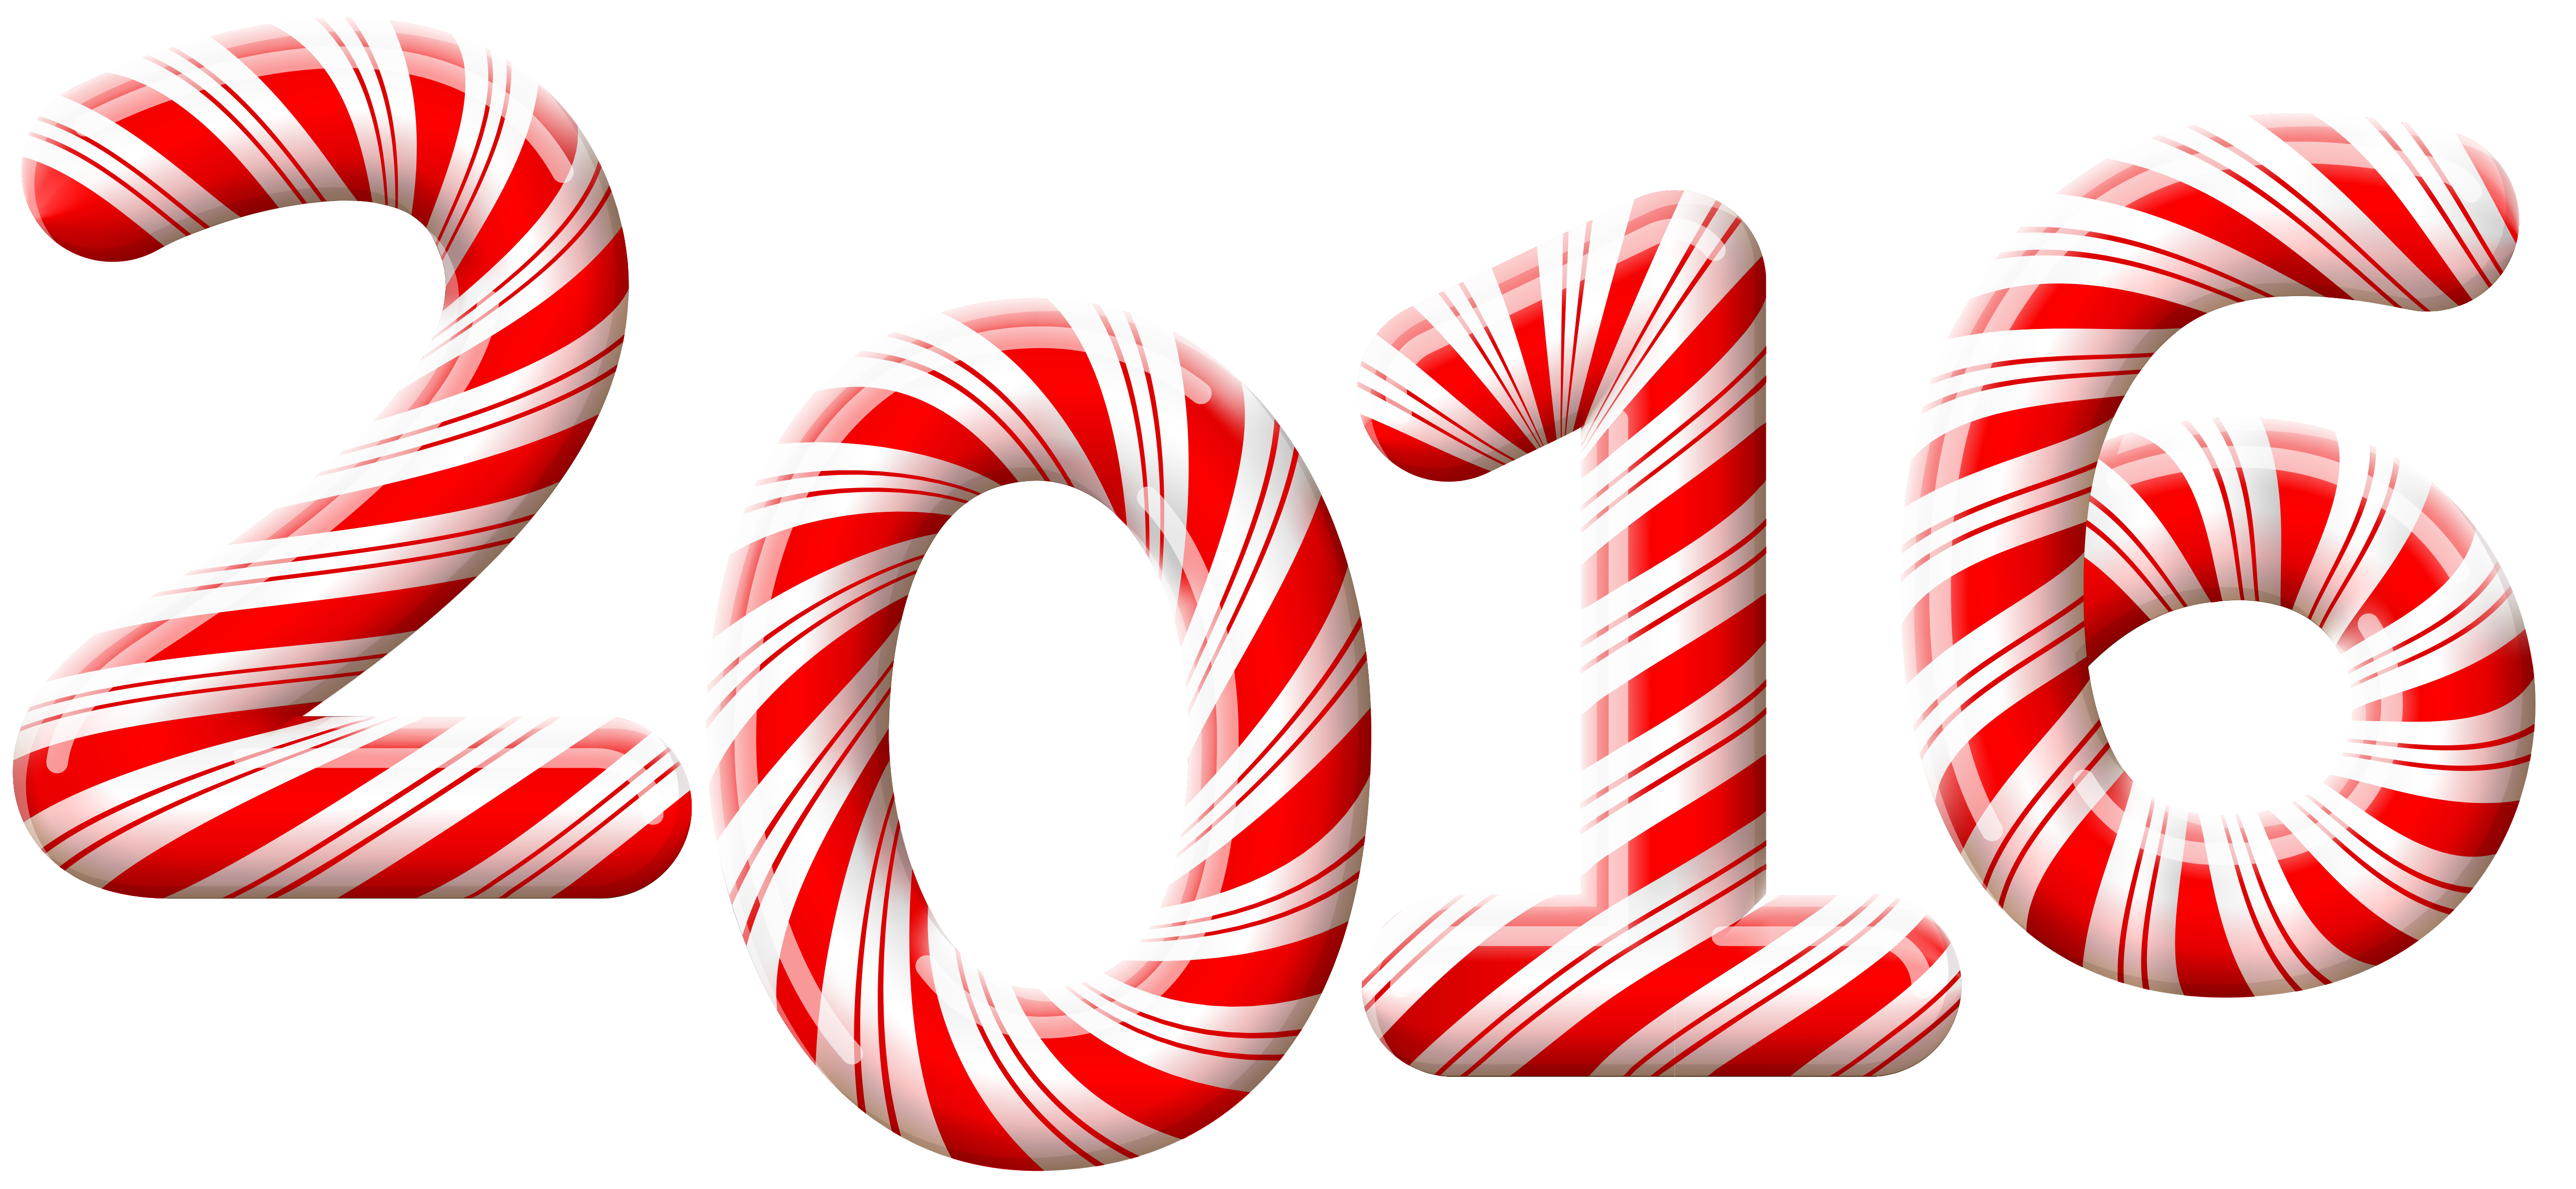 clipart black and white download  candy cane png. 2016 clipart.